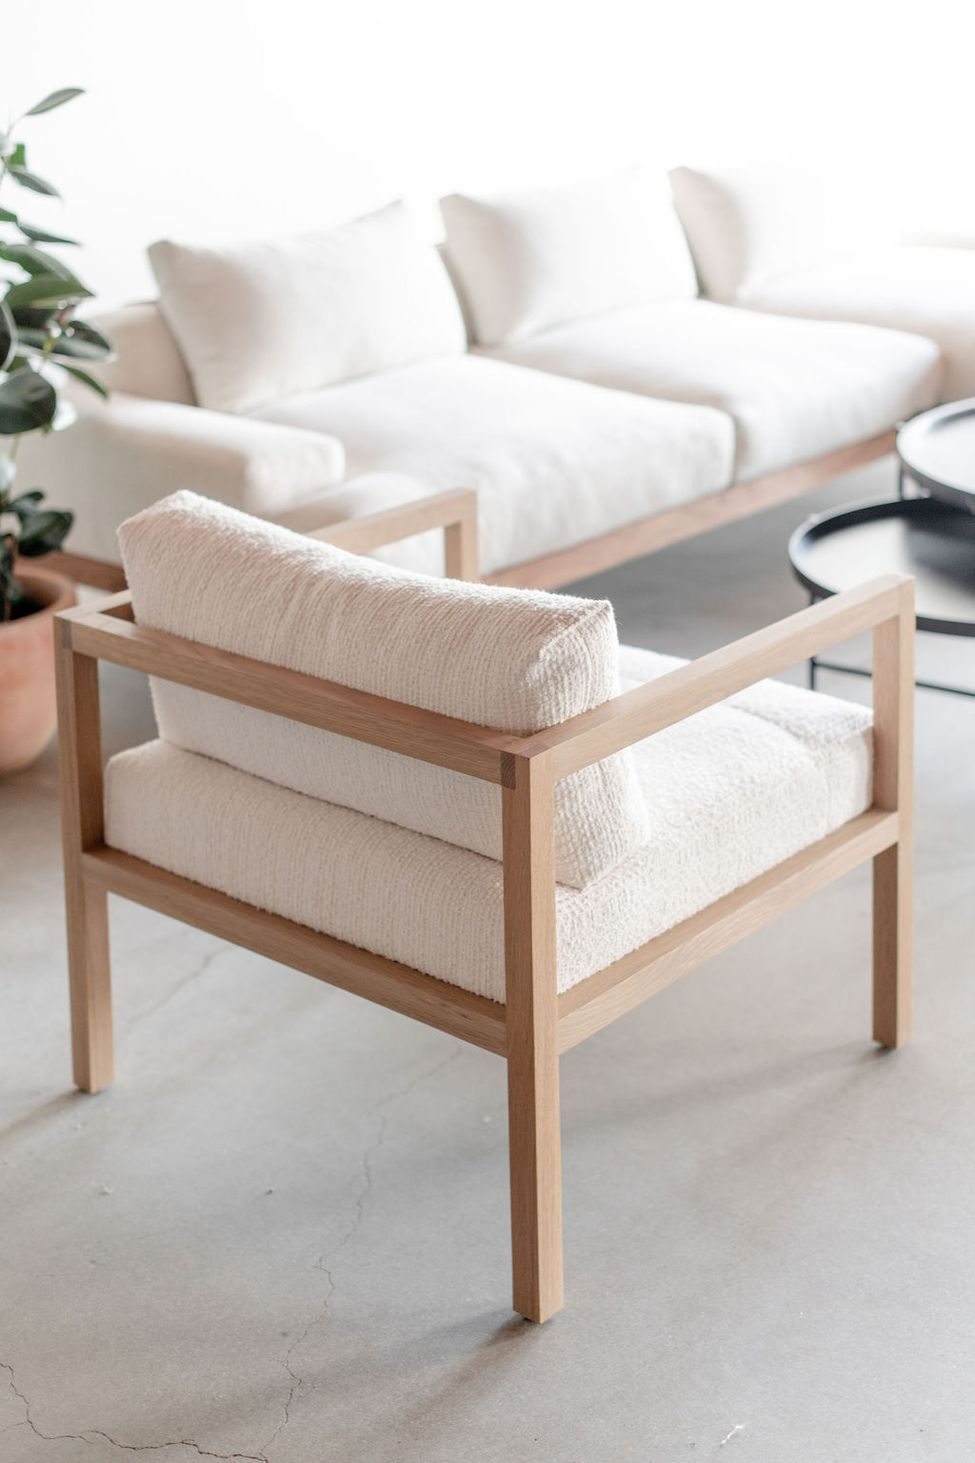 Eve Lounge Chair In 2020 Woodworking Furniture Plans Furniture Design Chair Furniture Design